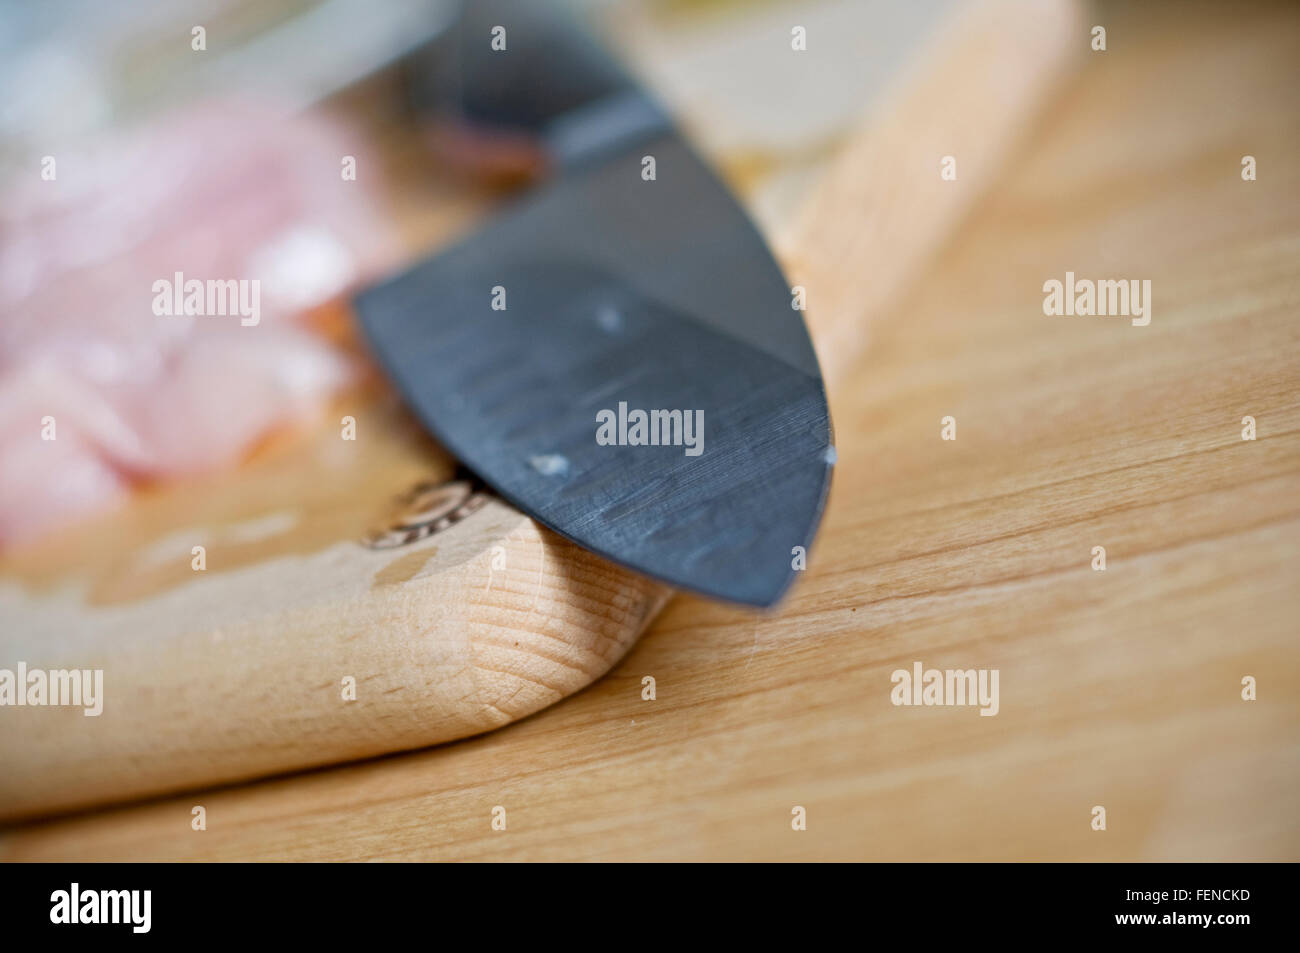 Close-Up Of Kitchen Knife On Cutting Board - Stock Image